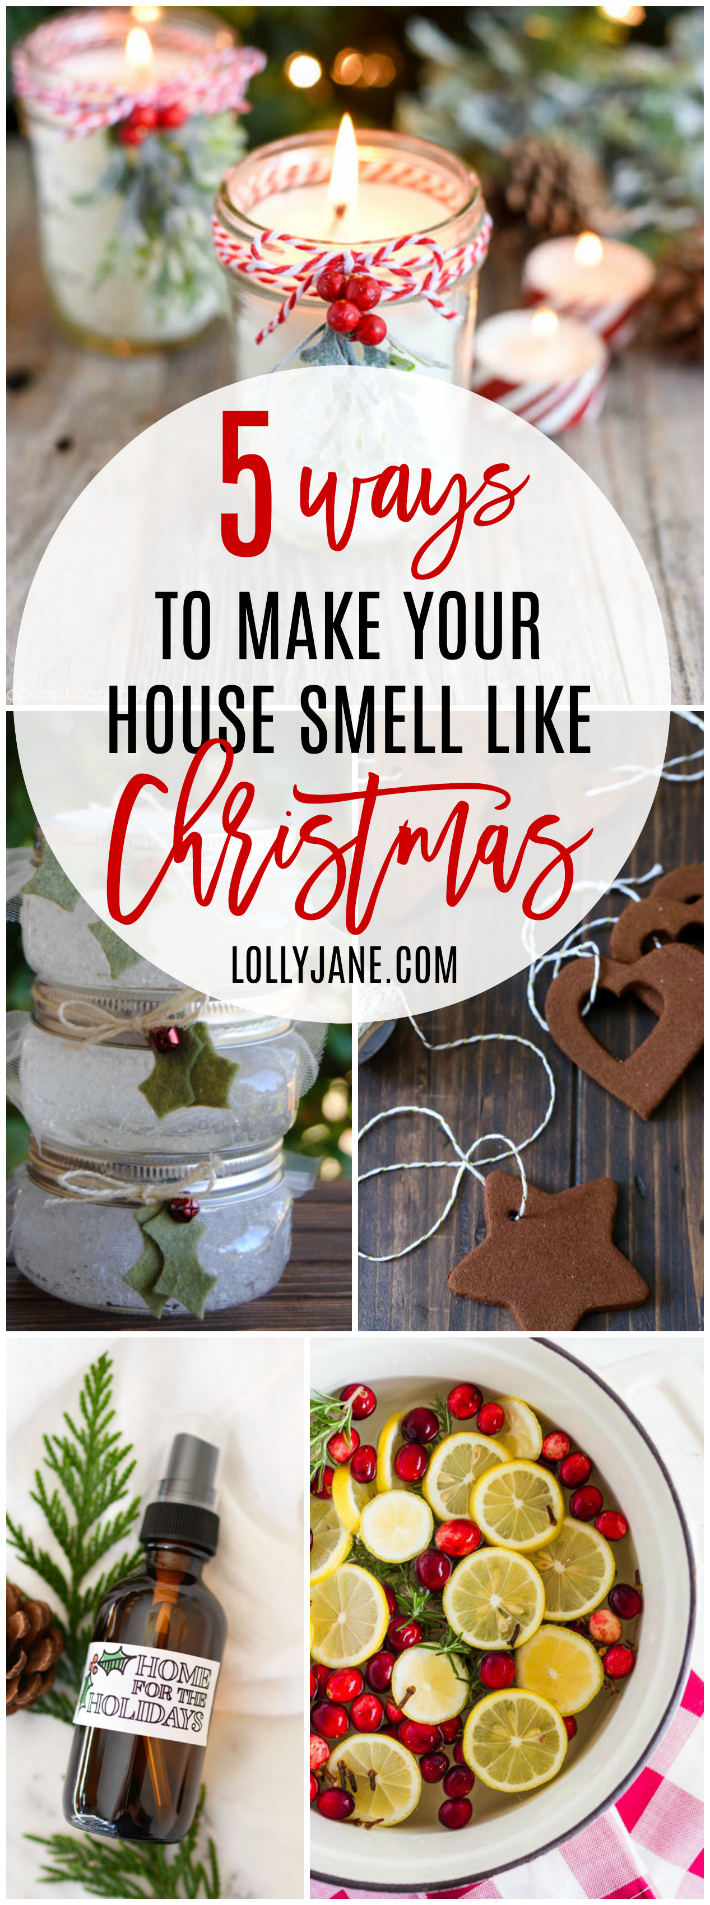 5 Ways To Make Your House Smell Like Christmas Lolly Jane